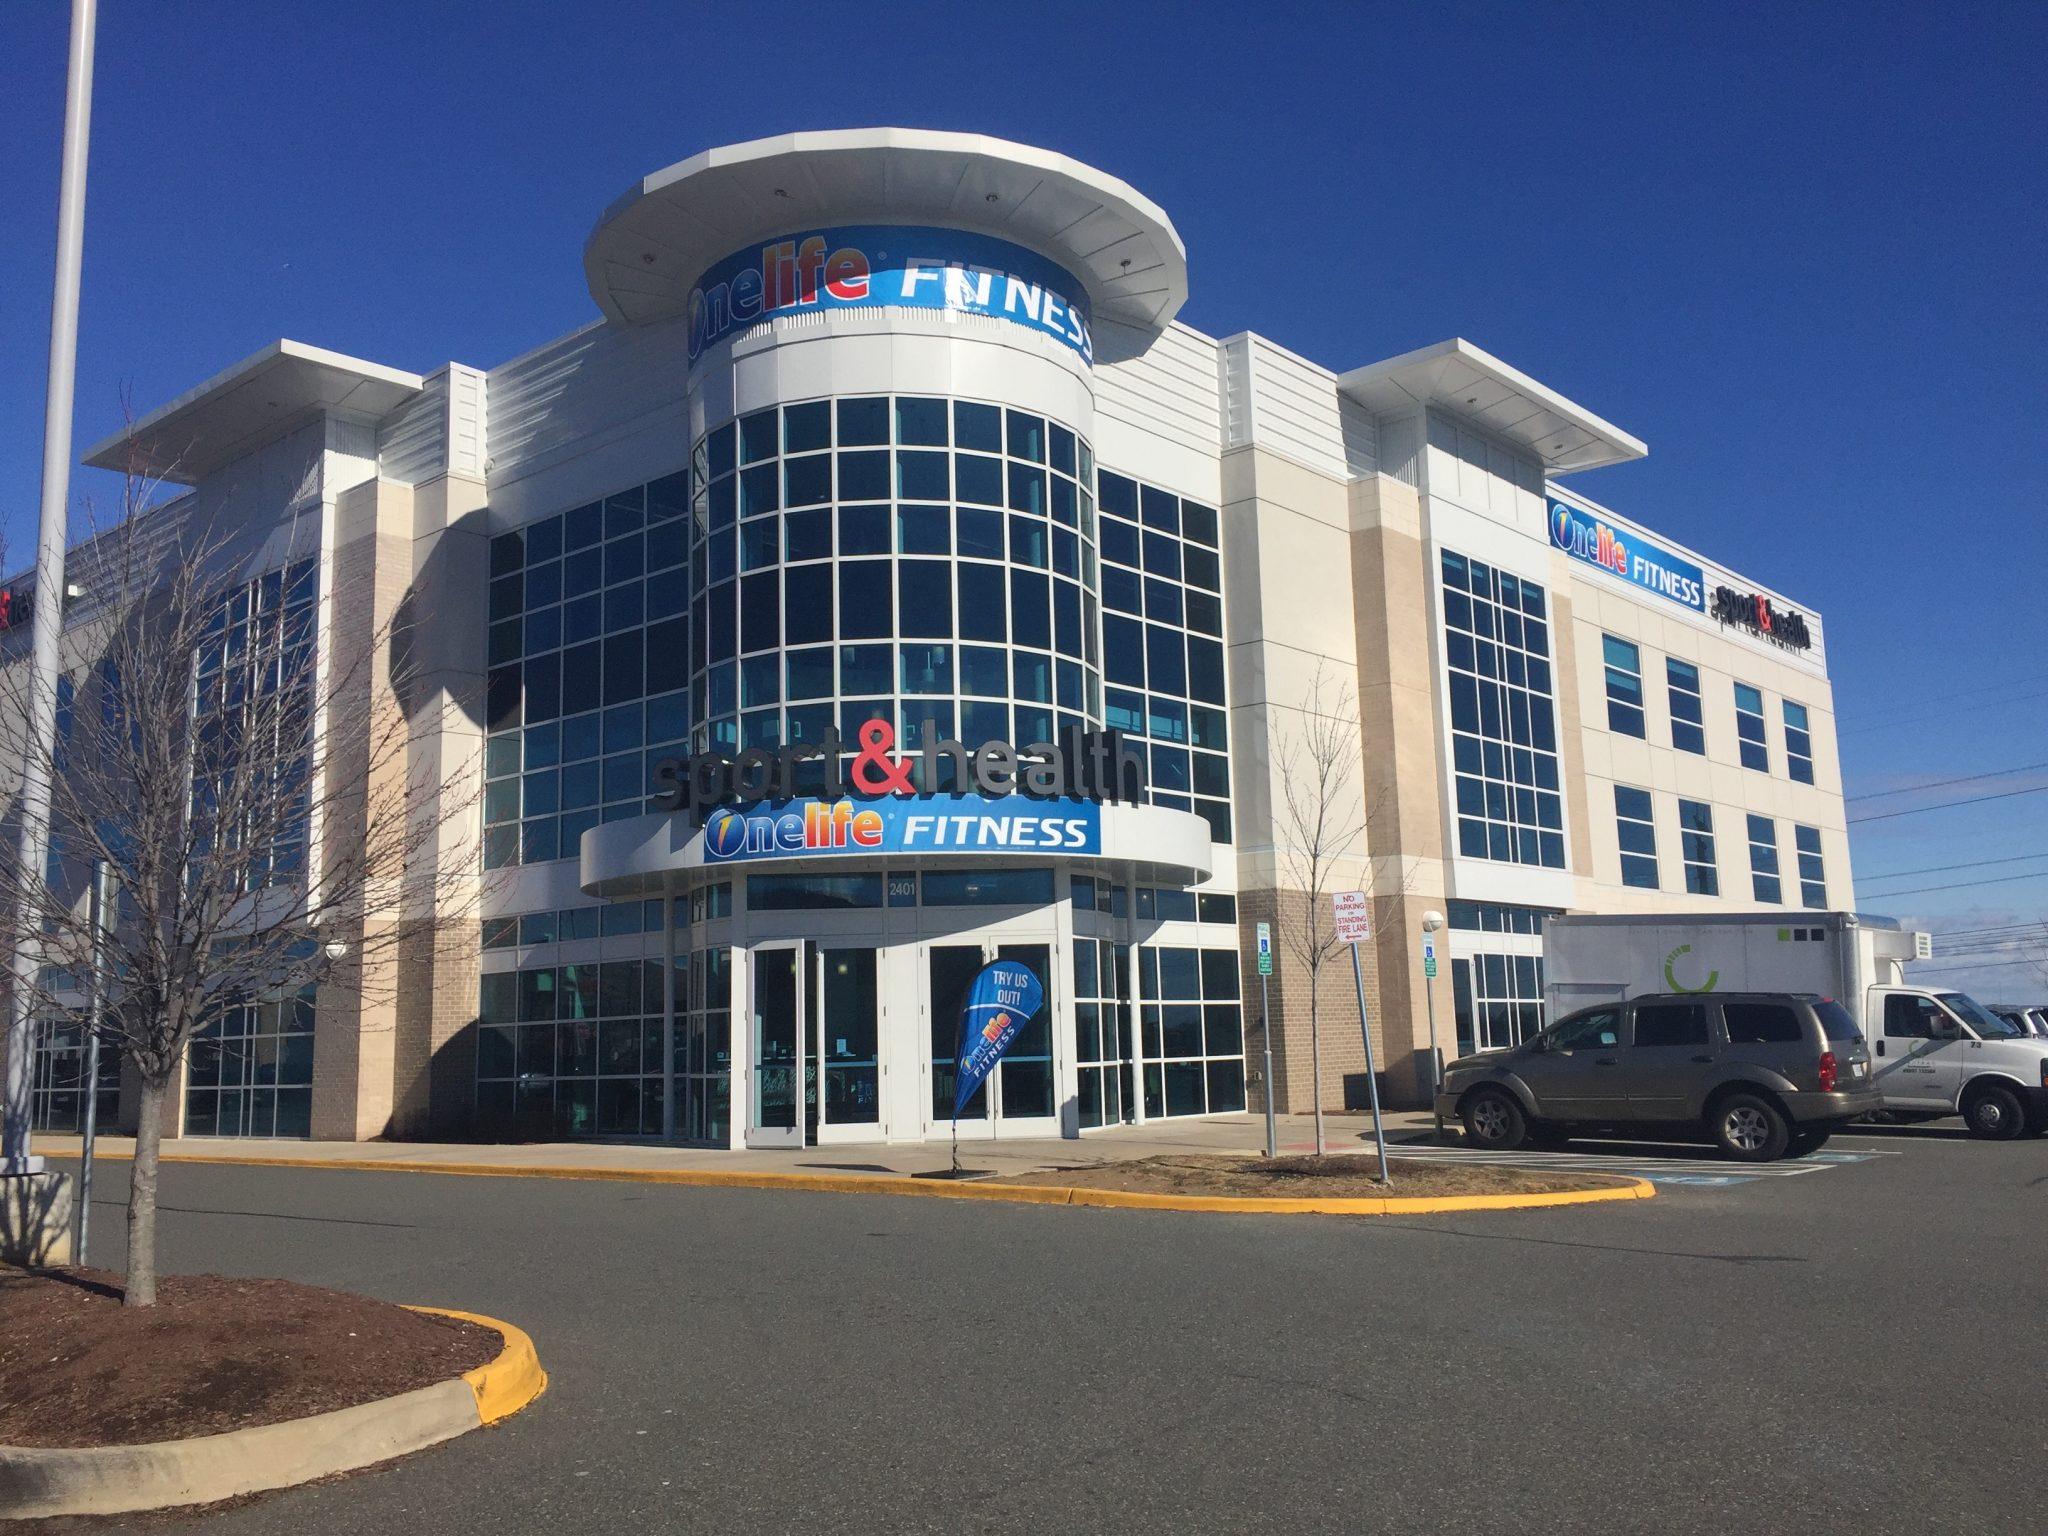 changes at stonebridge onelife fitness opens golfsmith closes